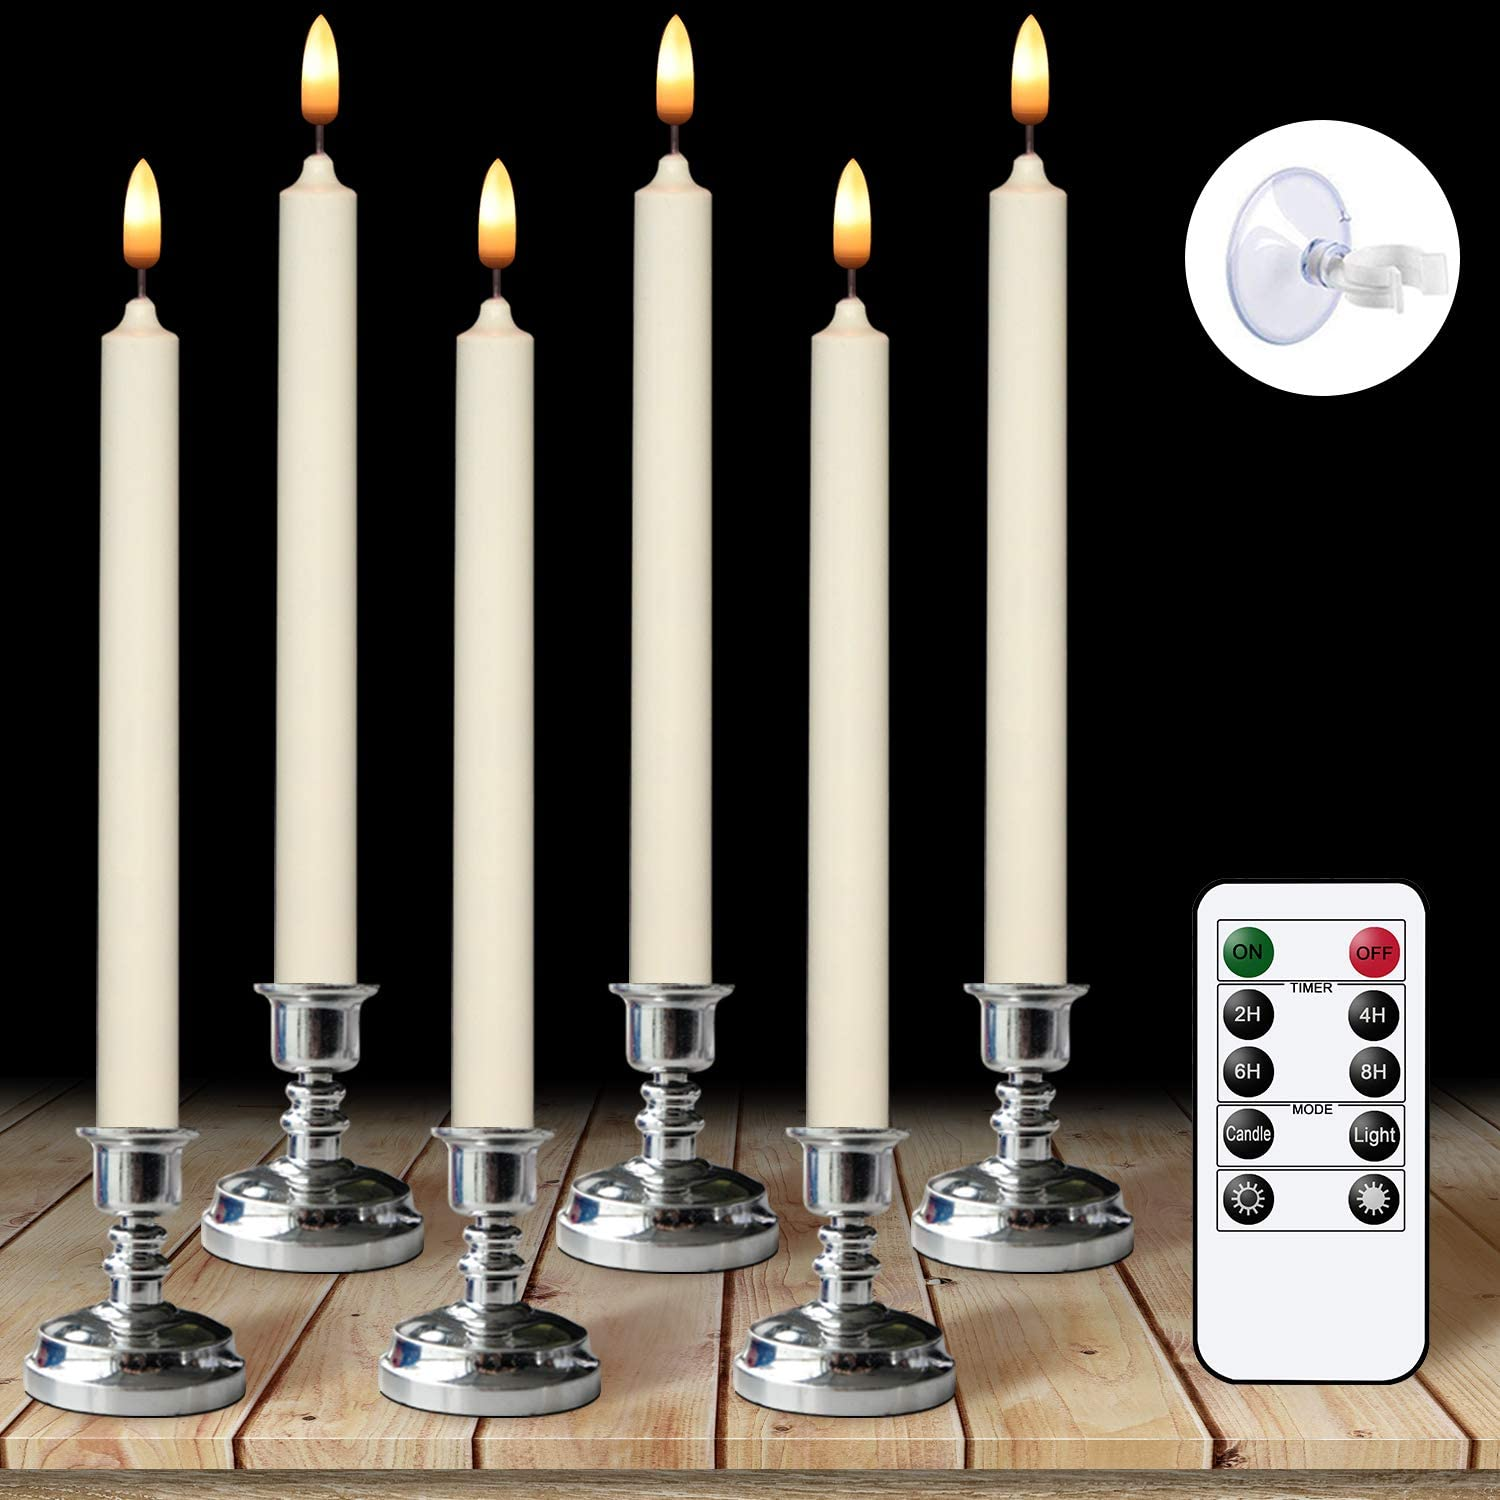 Flameless Window Taper Nippon regular agency Candles with Op Battery Under blast sales Timer and Remote